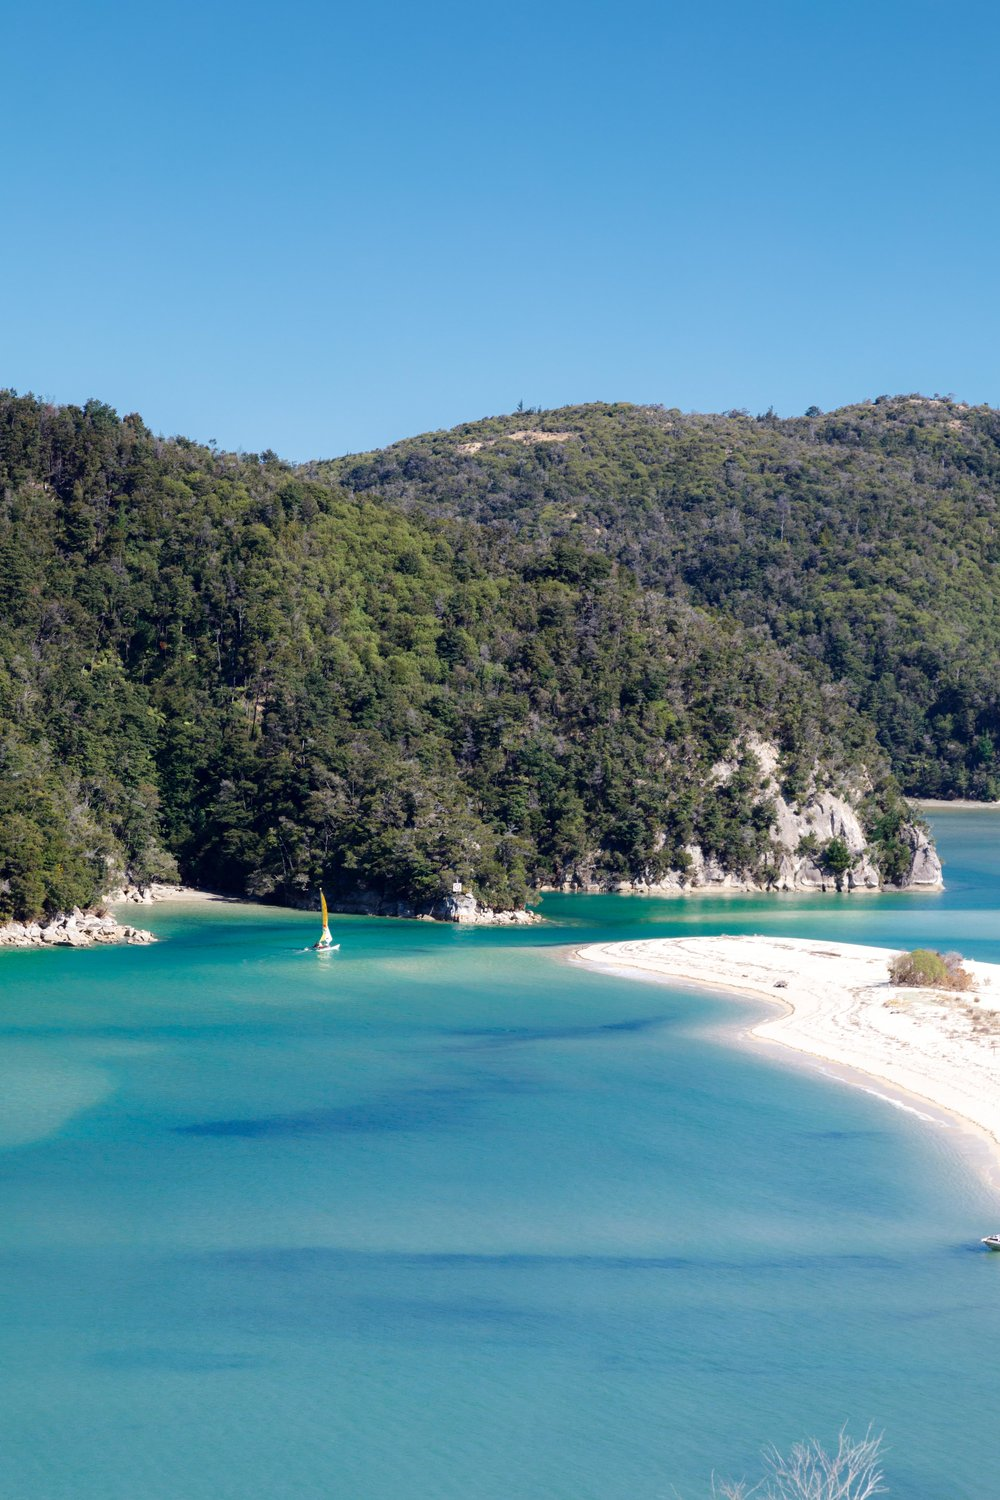 Instagrammable spots of New Zealand: Torrent Bay, Abel Tasman